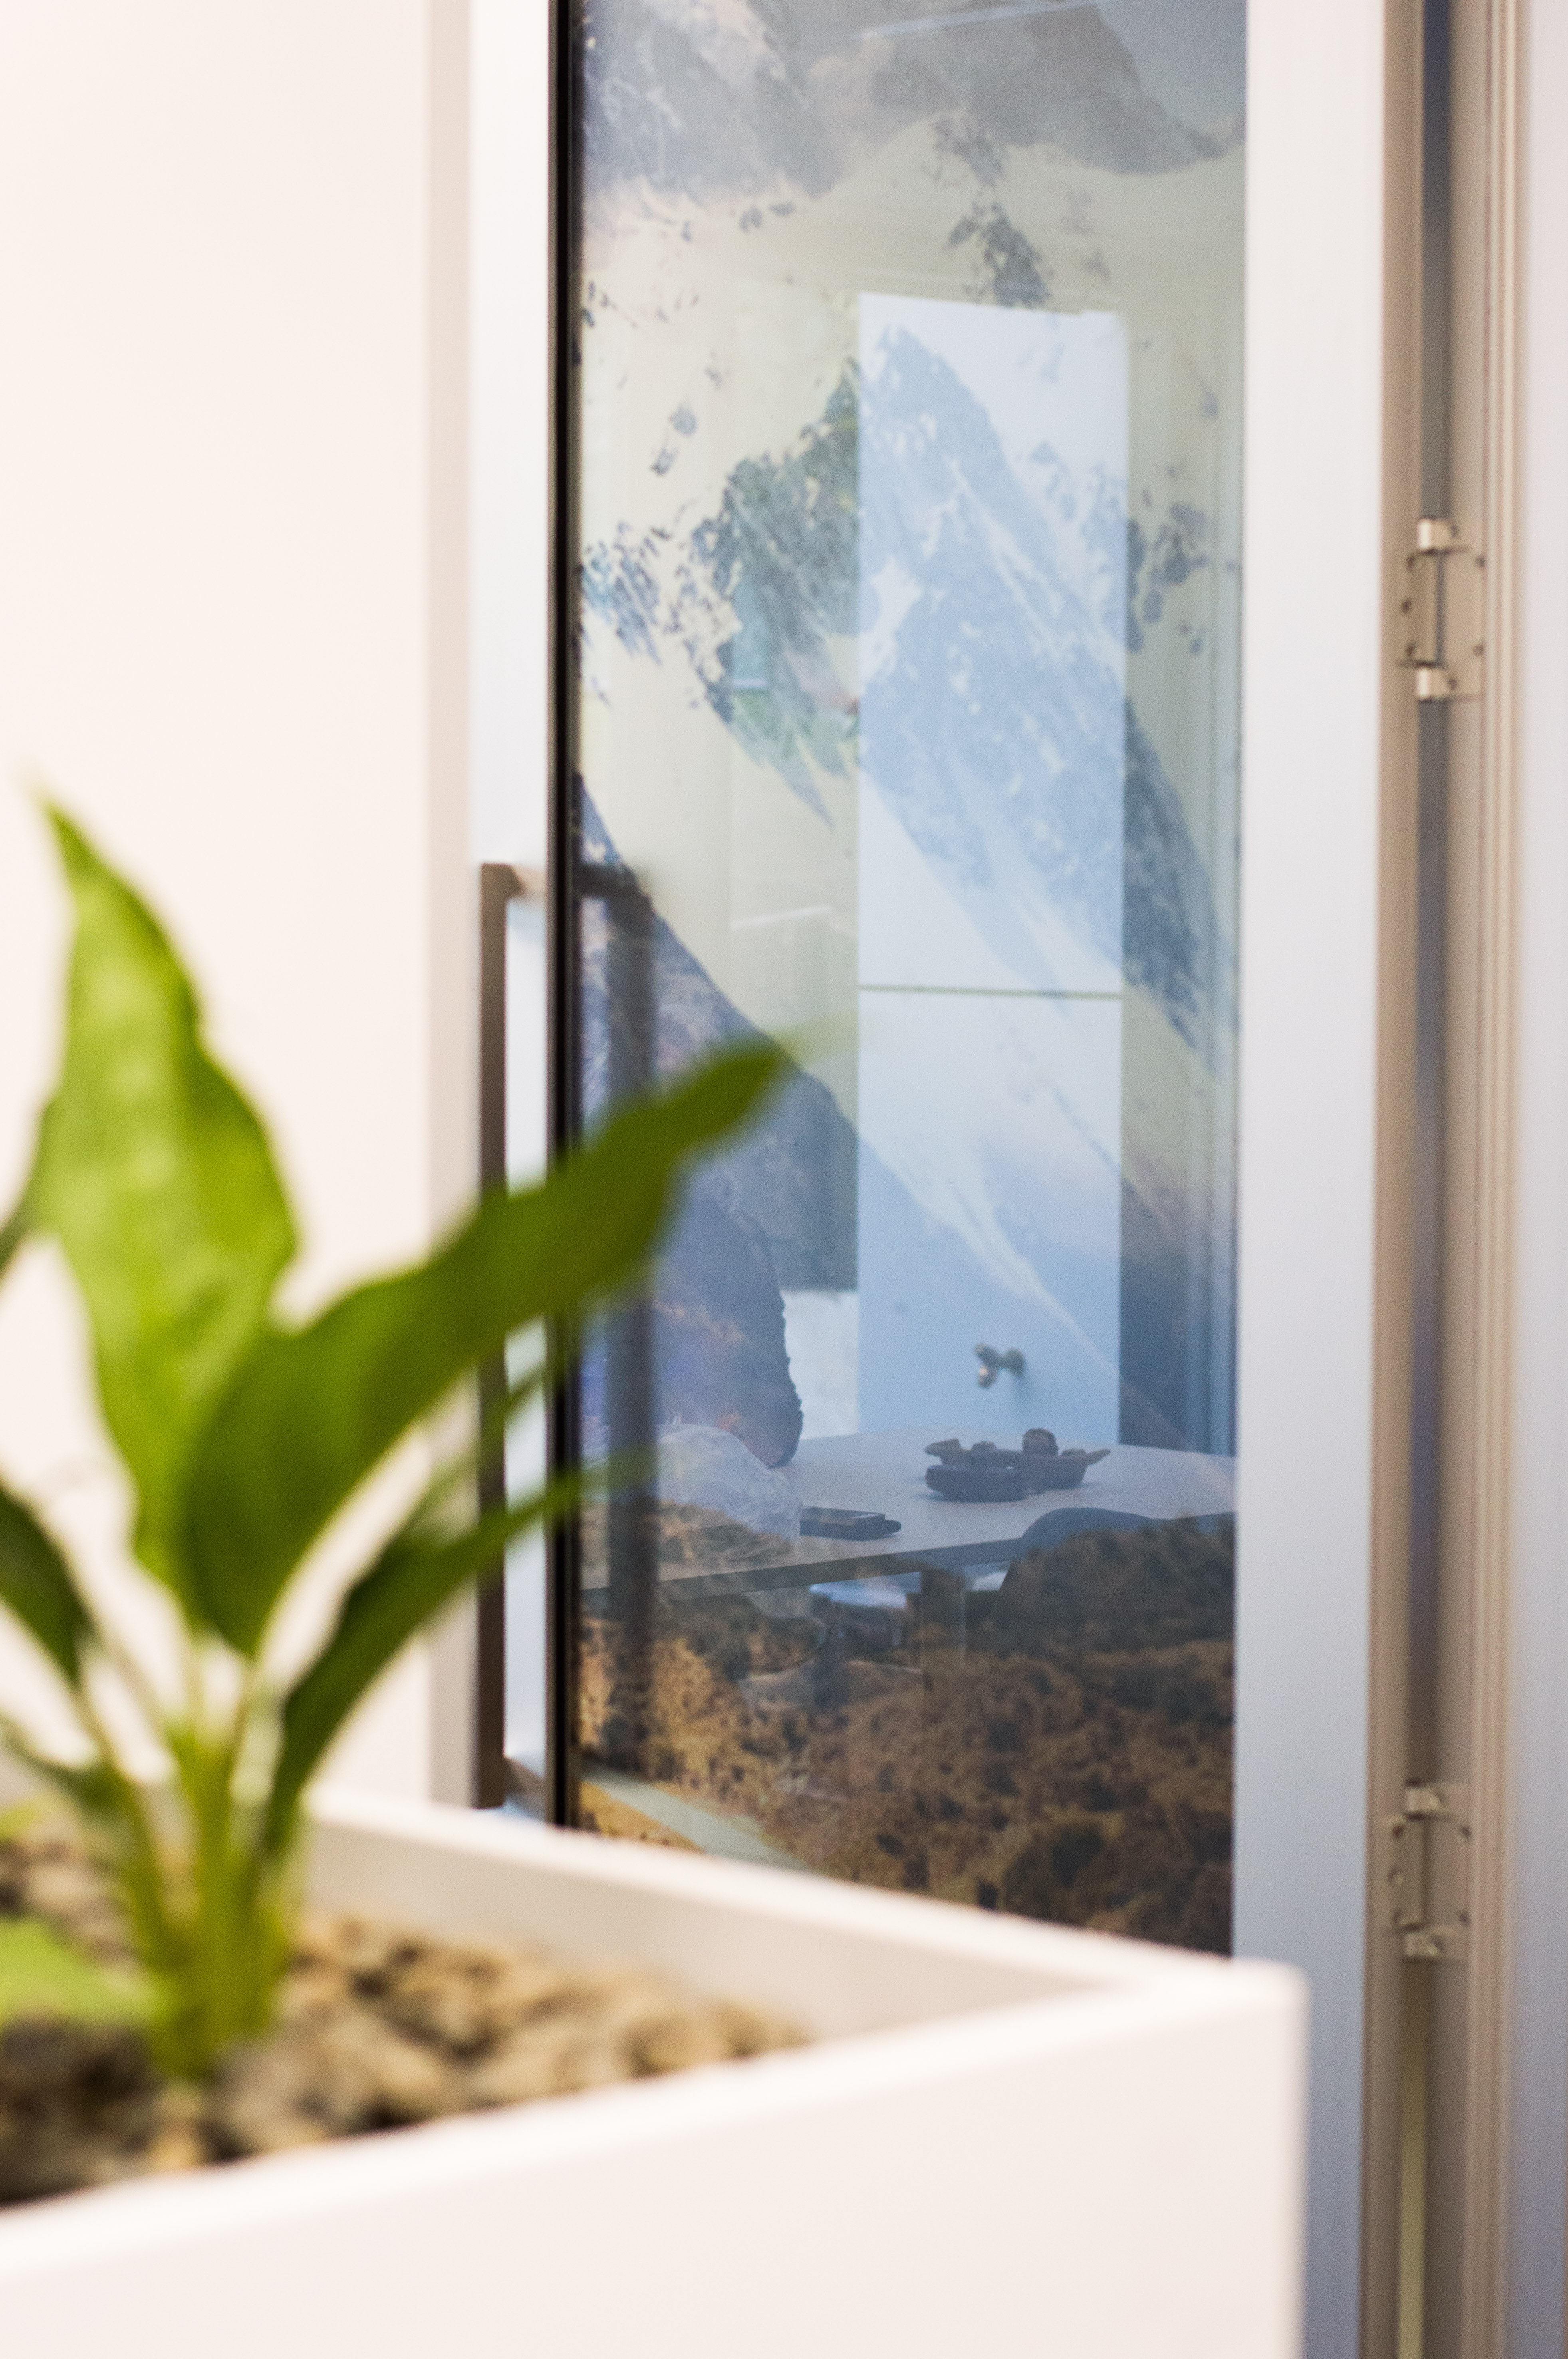 Plants Their Benefits In The Workplace Commercial Interior Design Auckland Bay Of Plenty